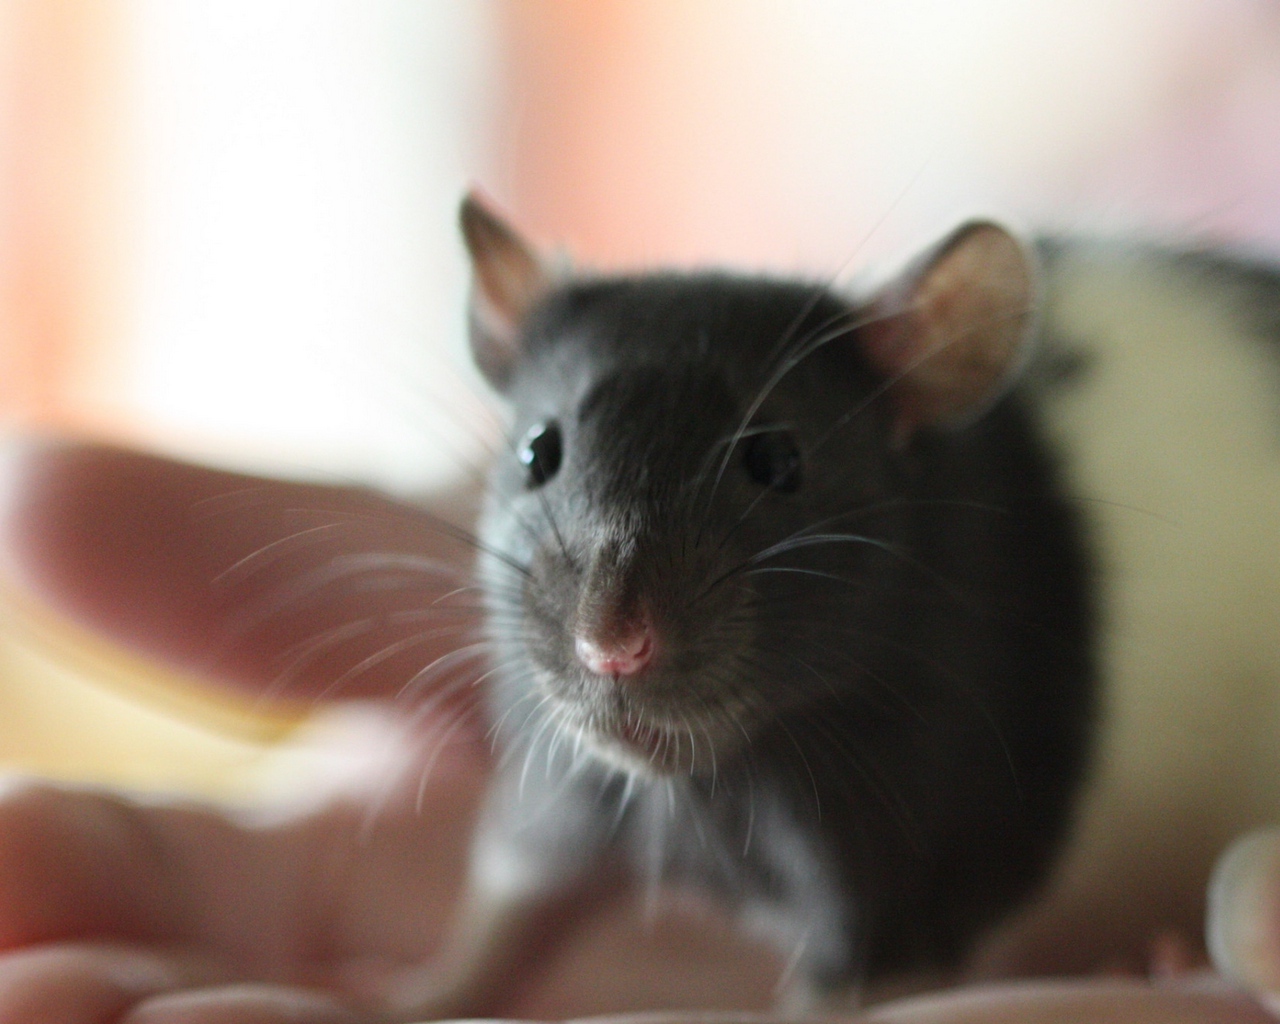 Download wallpapers 1280x1024 mouse, rat, face, rodent standard 5:4